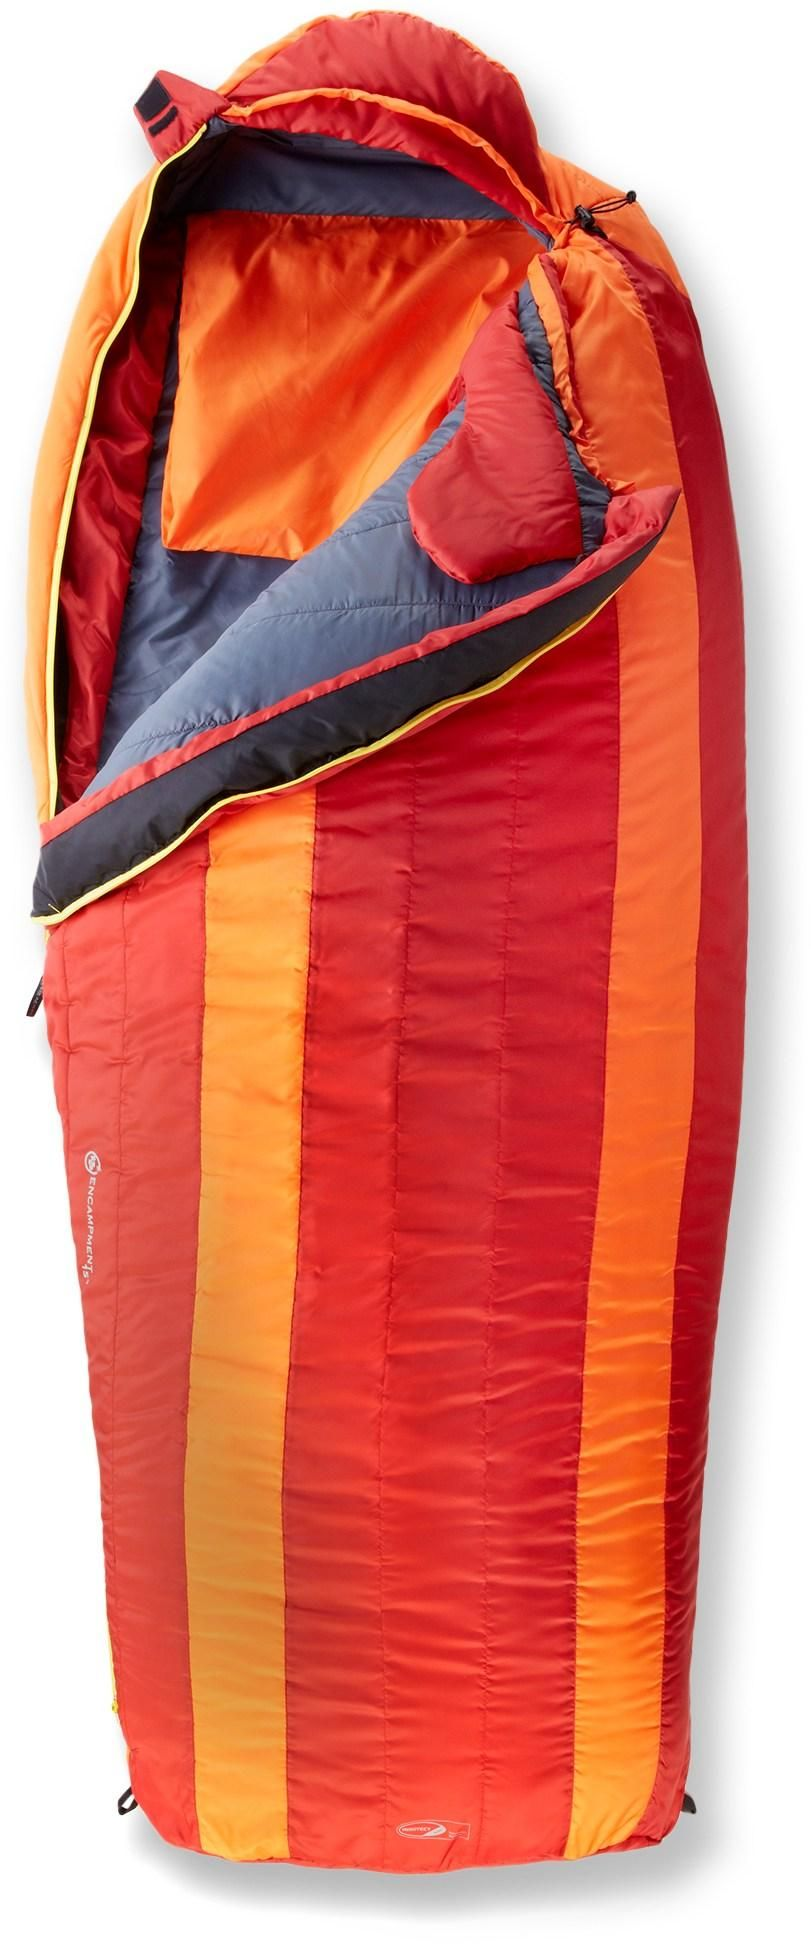 Big Agnes Encampment Sleeping Bag Rei Co Op Kids Sleeping Bags Big Agnes Sleeping Bag A description of tropes appearing in how to keep a mummy. pinterest